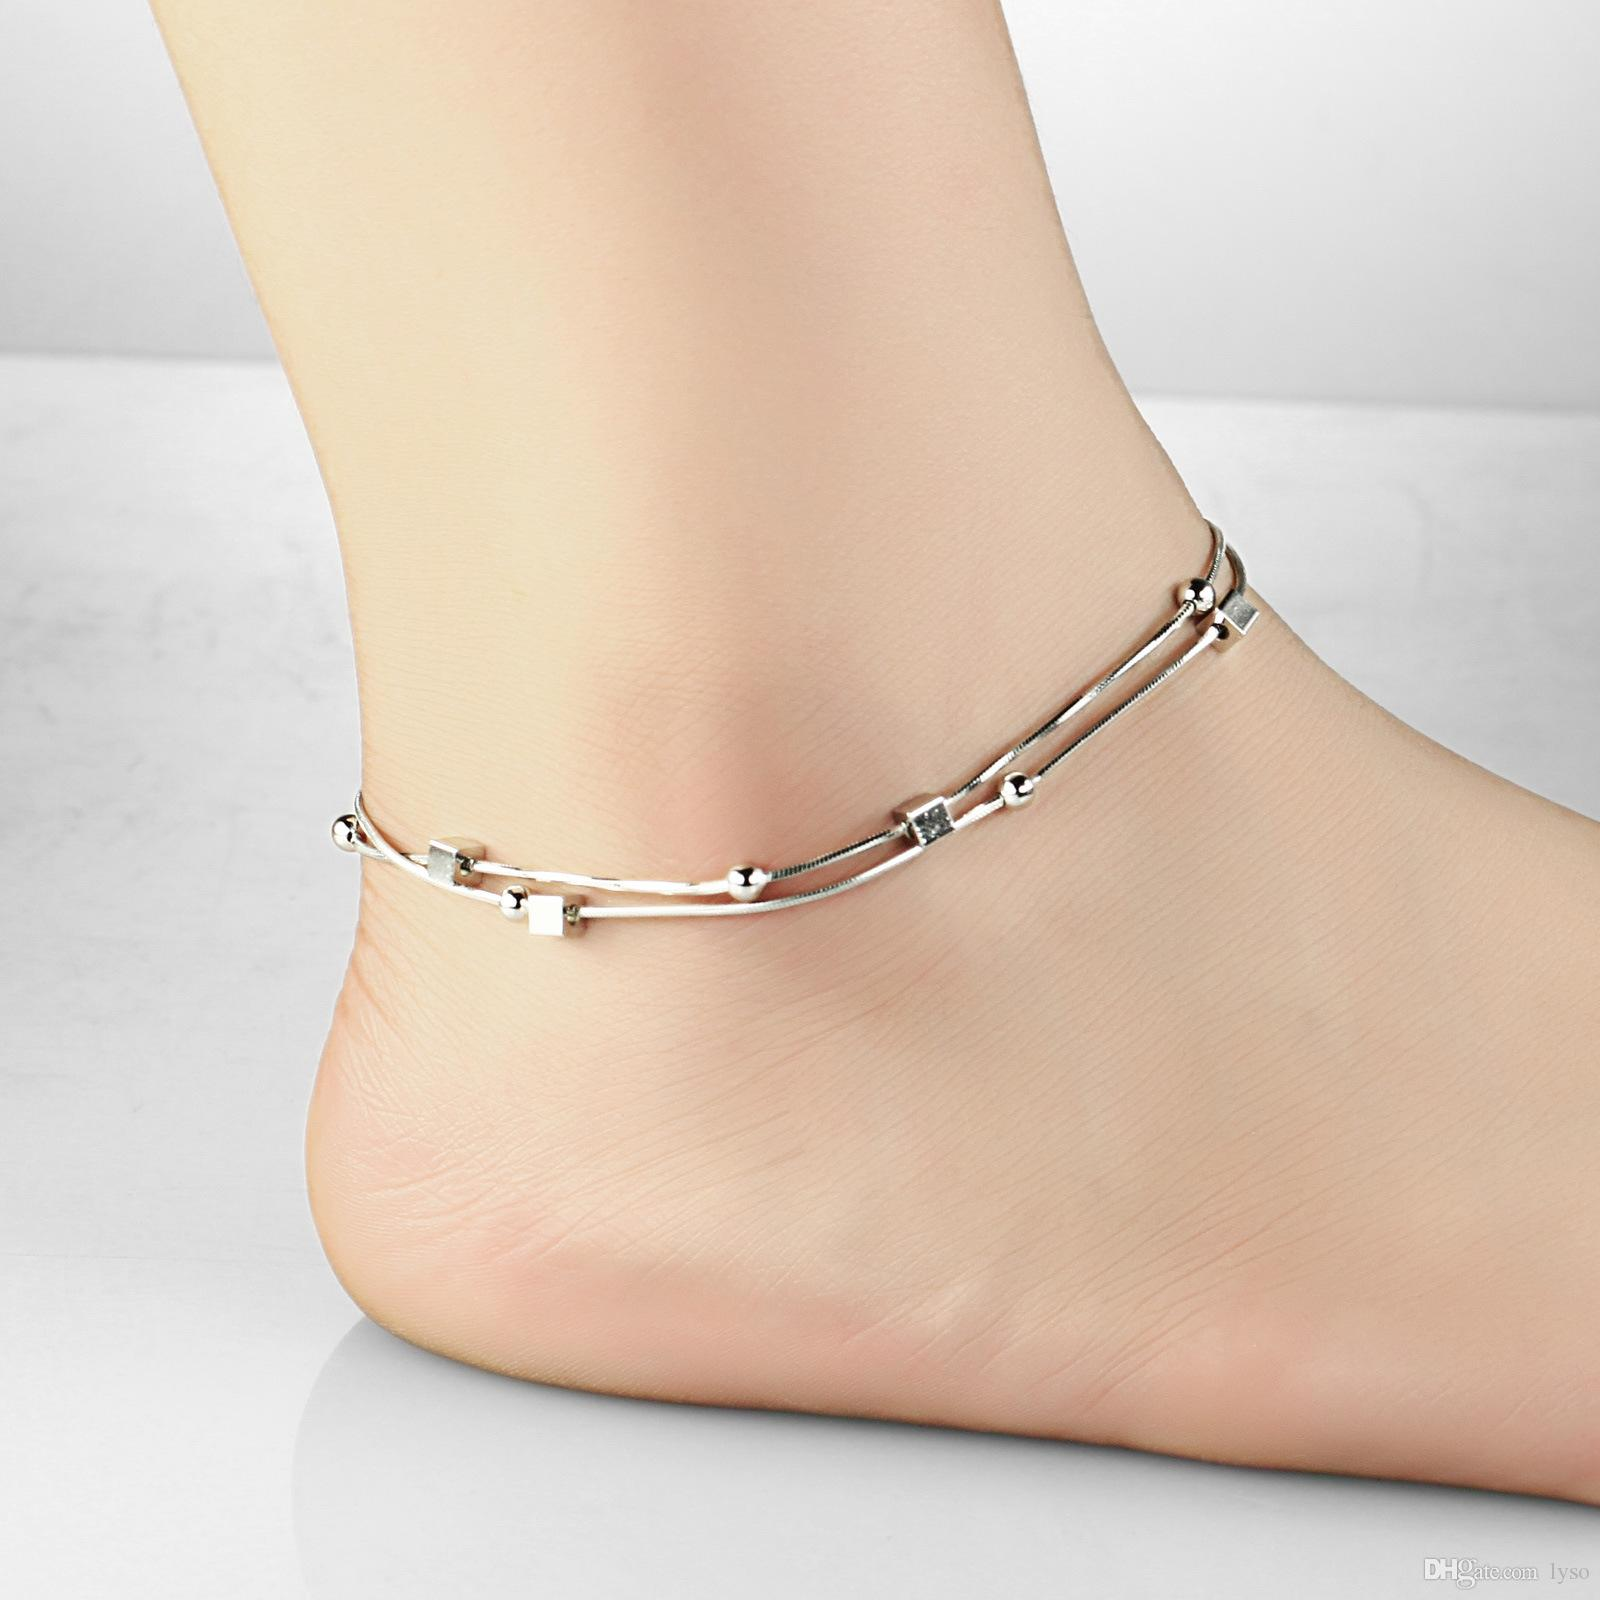 img knight anklet samantha link collections anklets fine jewelry